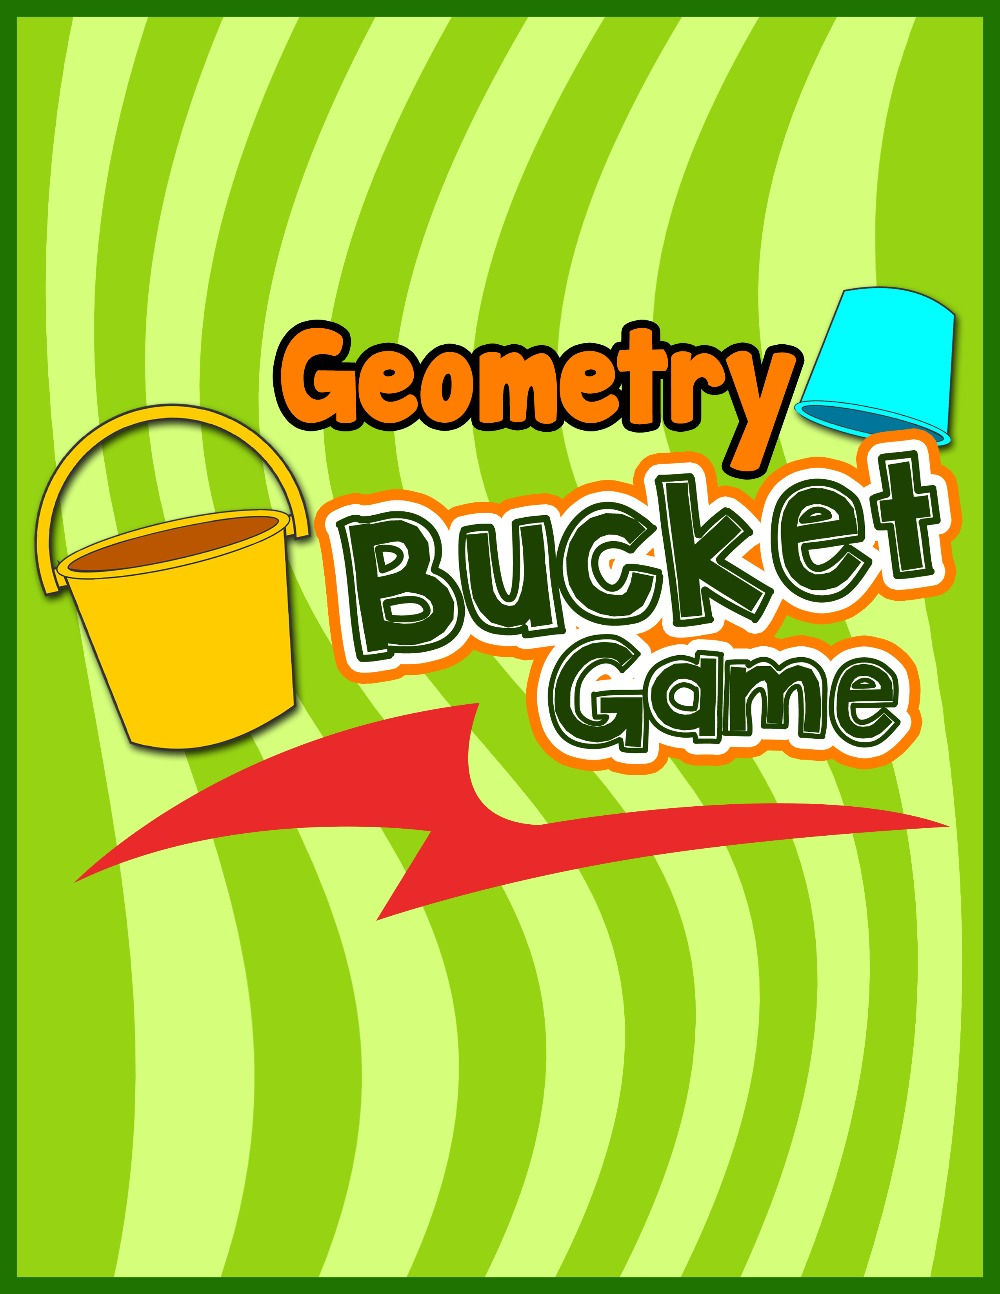 Geometry Bucket Game